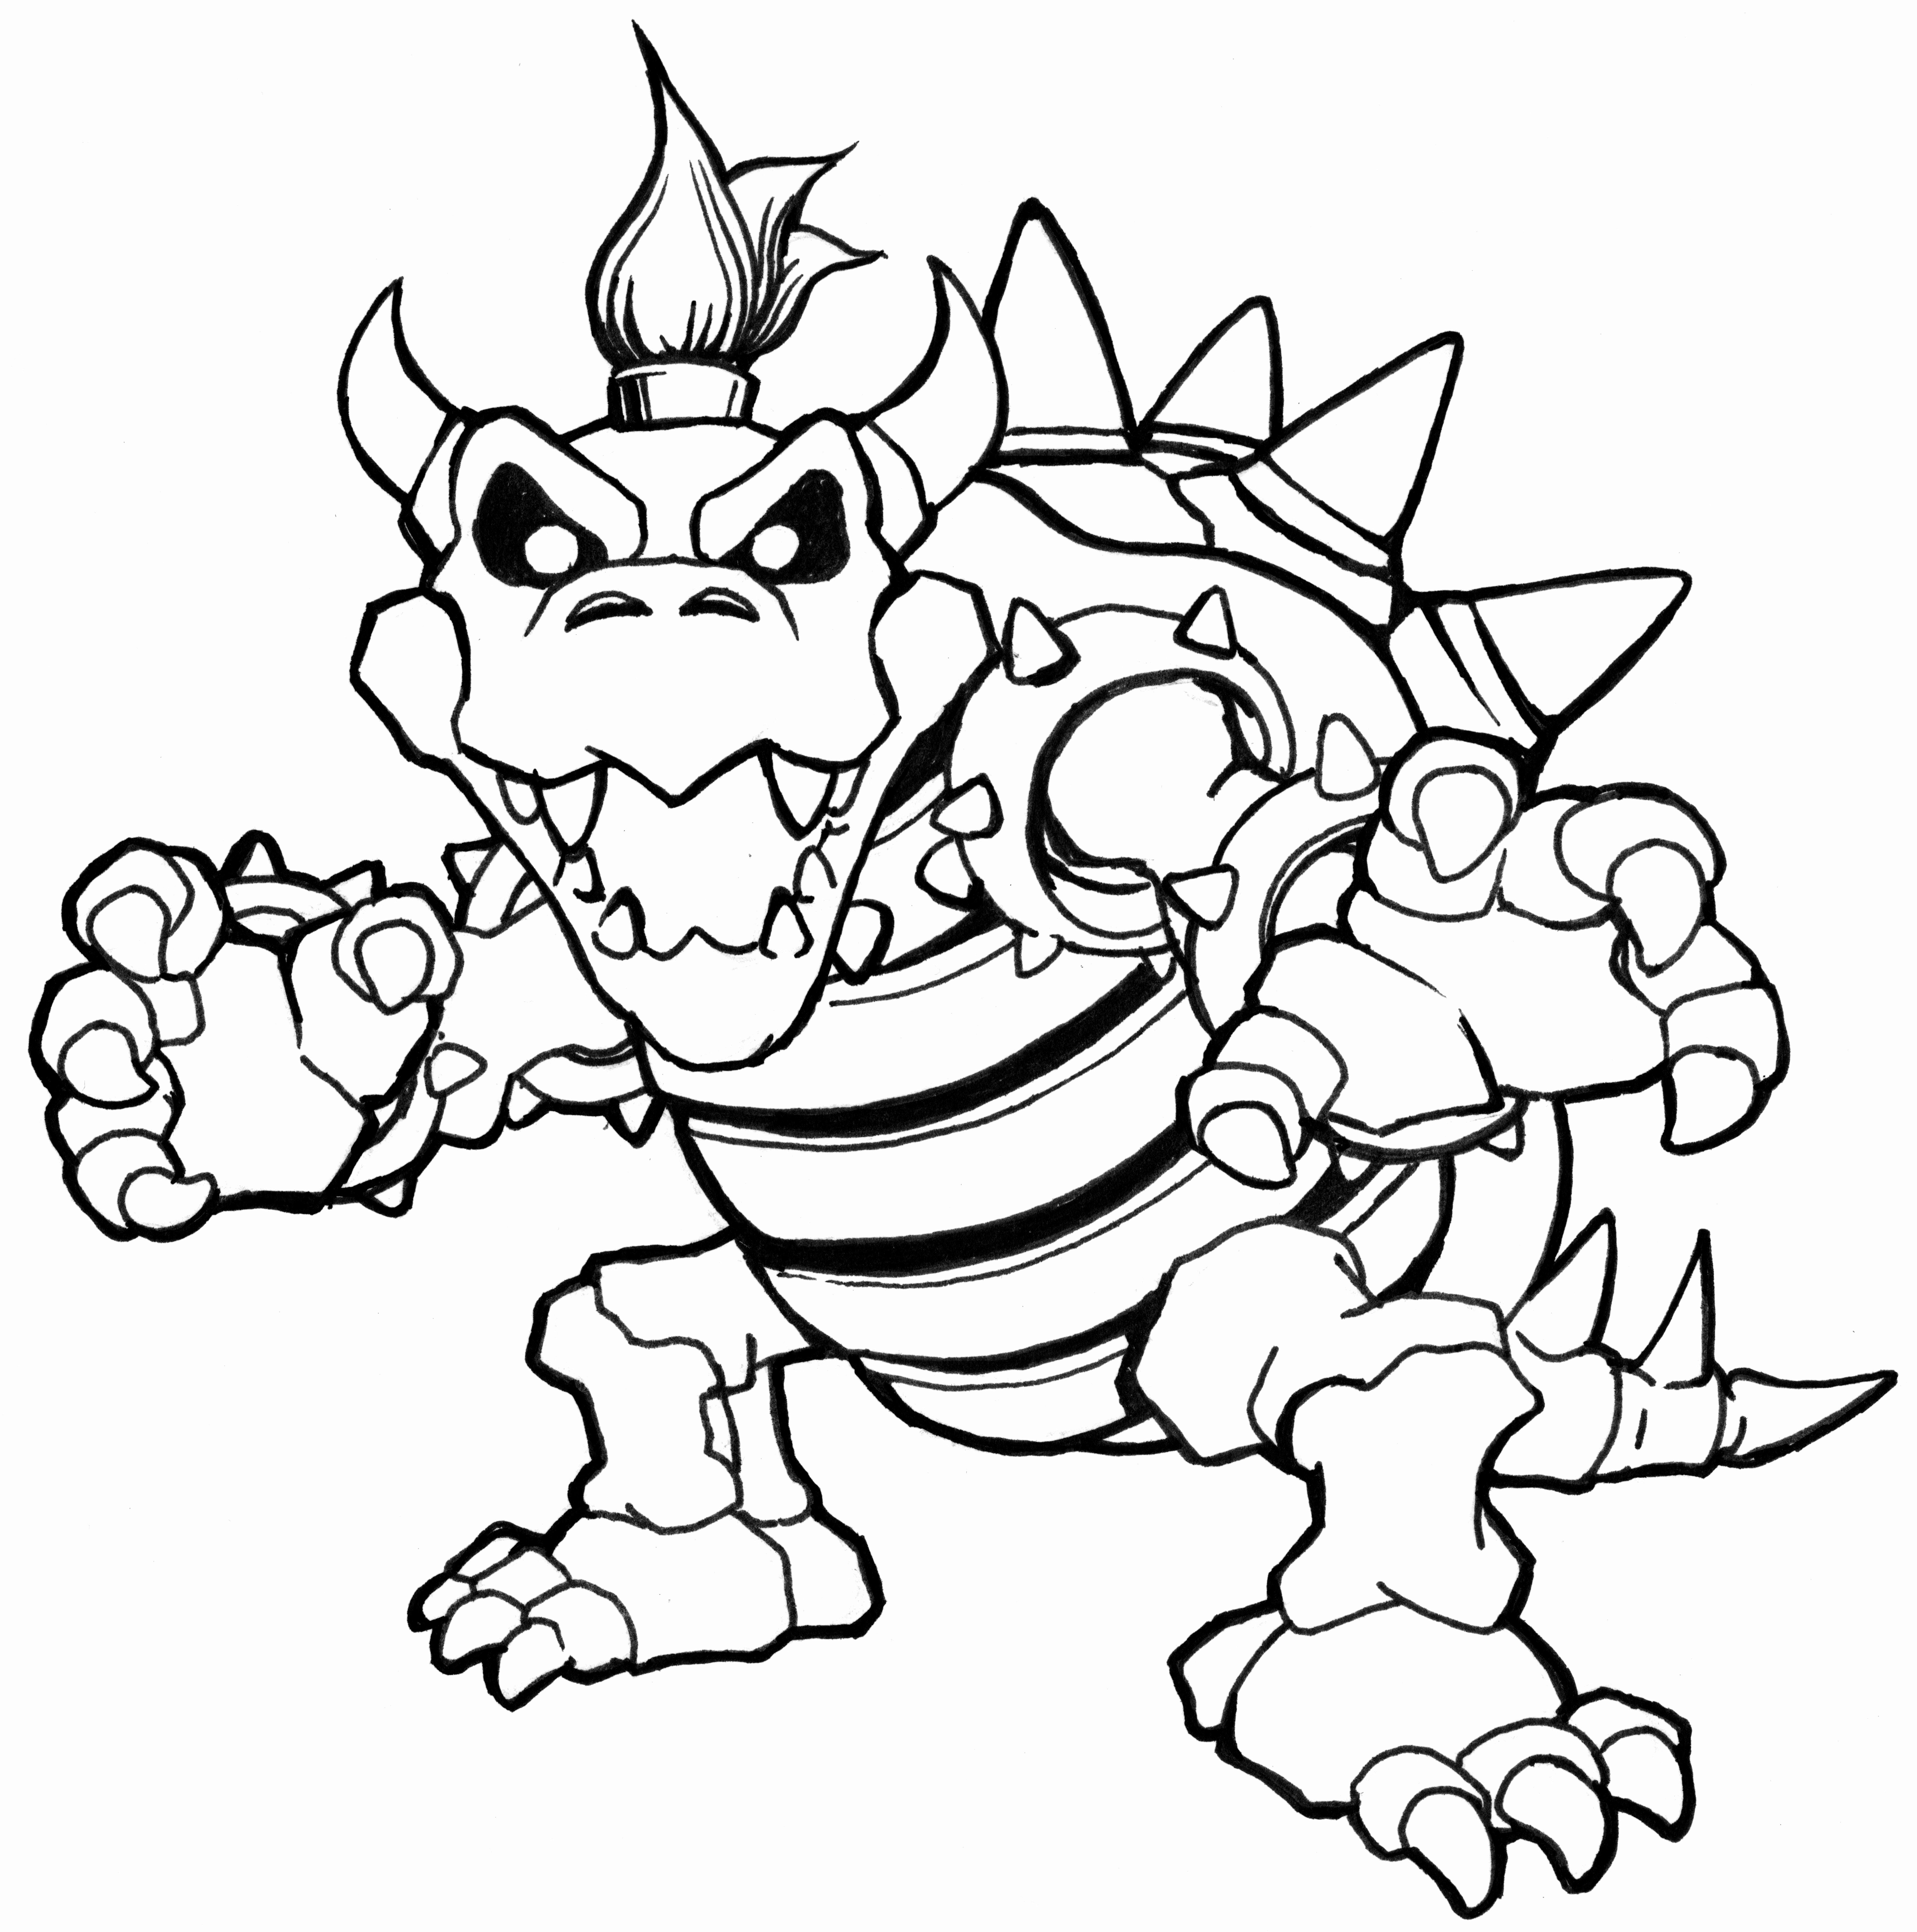 Dry Bones Coloring Pages New Bowser Coloring Bowser